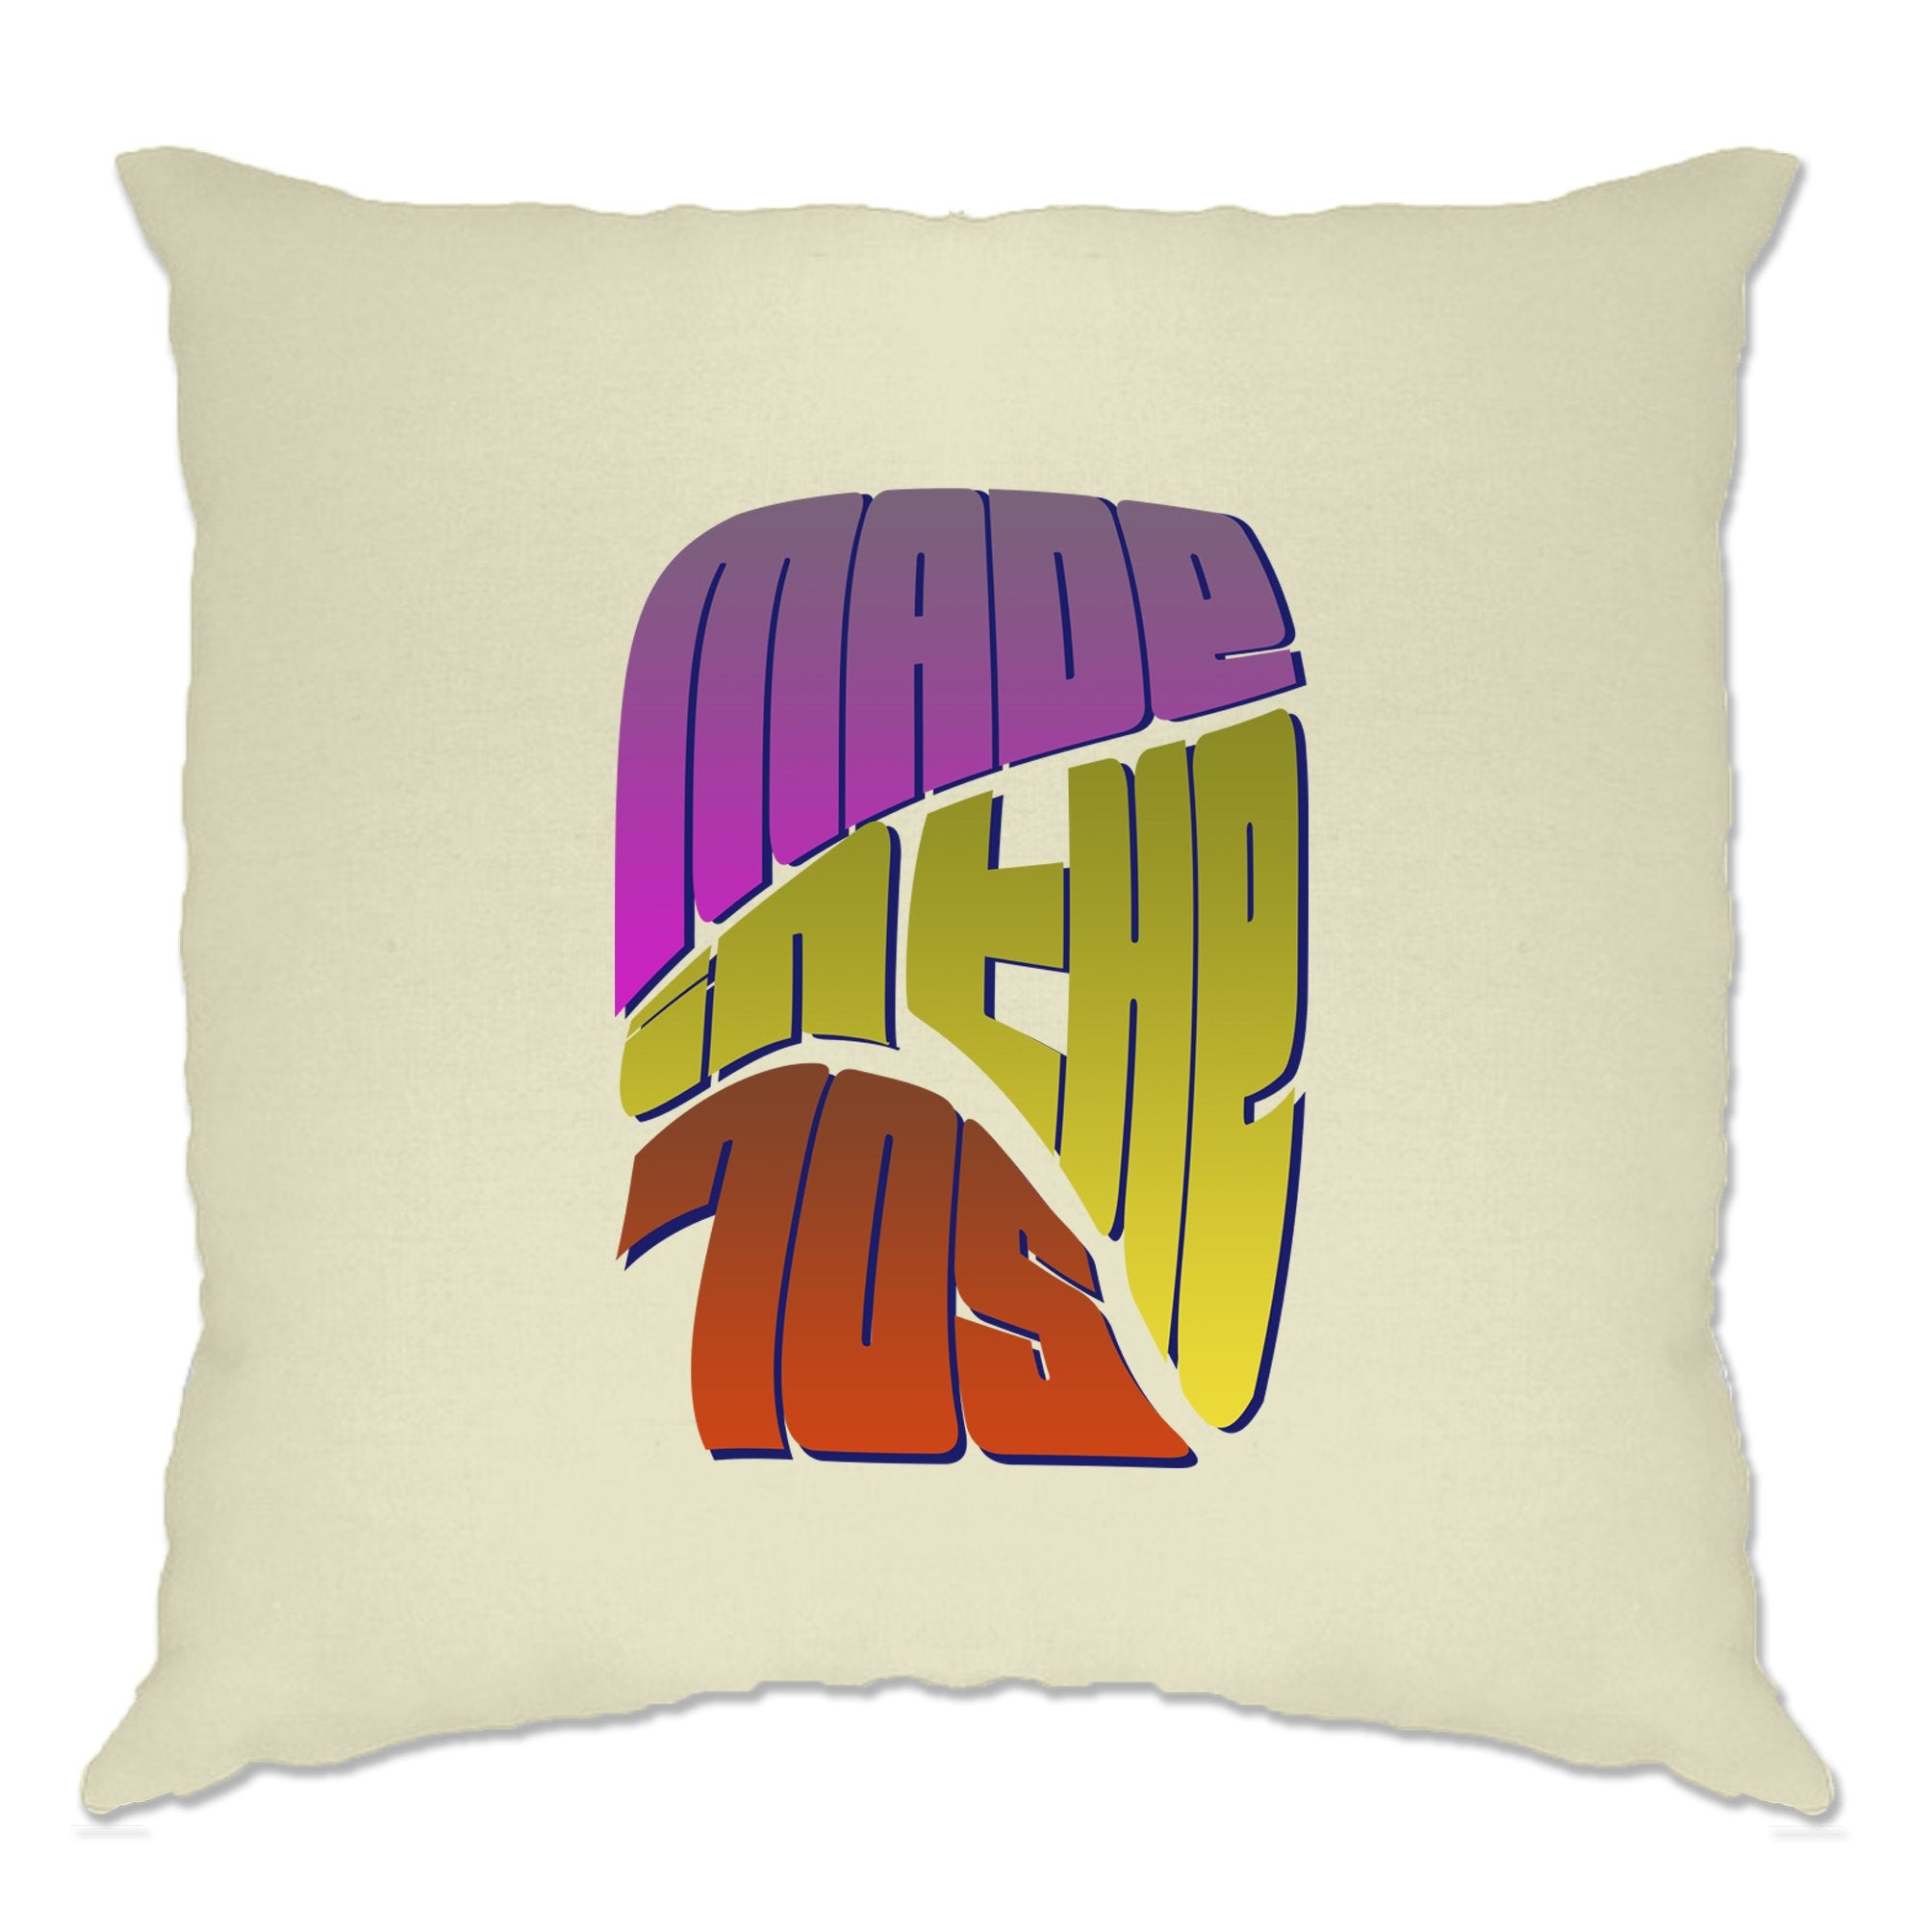 Retro Birthday Cushion Cover Made In The 70s